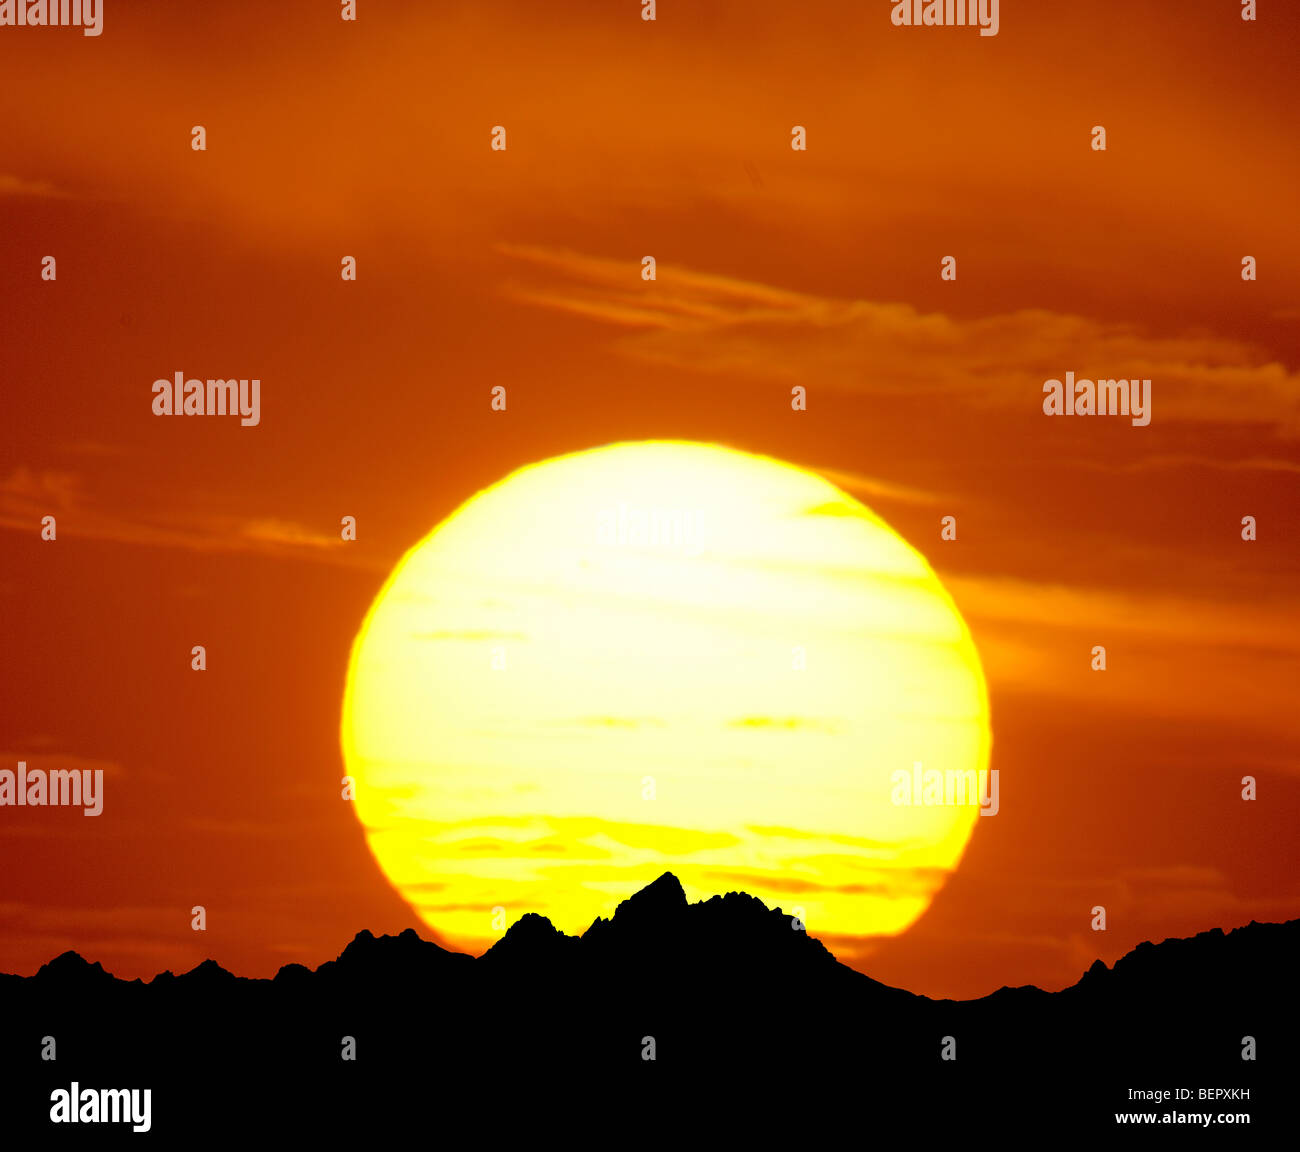 telephoto photograph of large sunset and rocky mountains - Stock Image